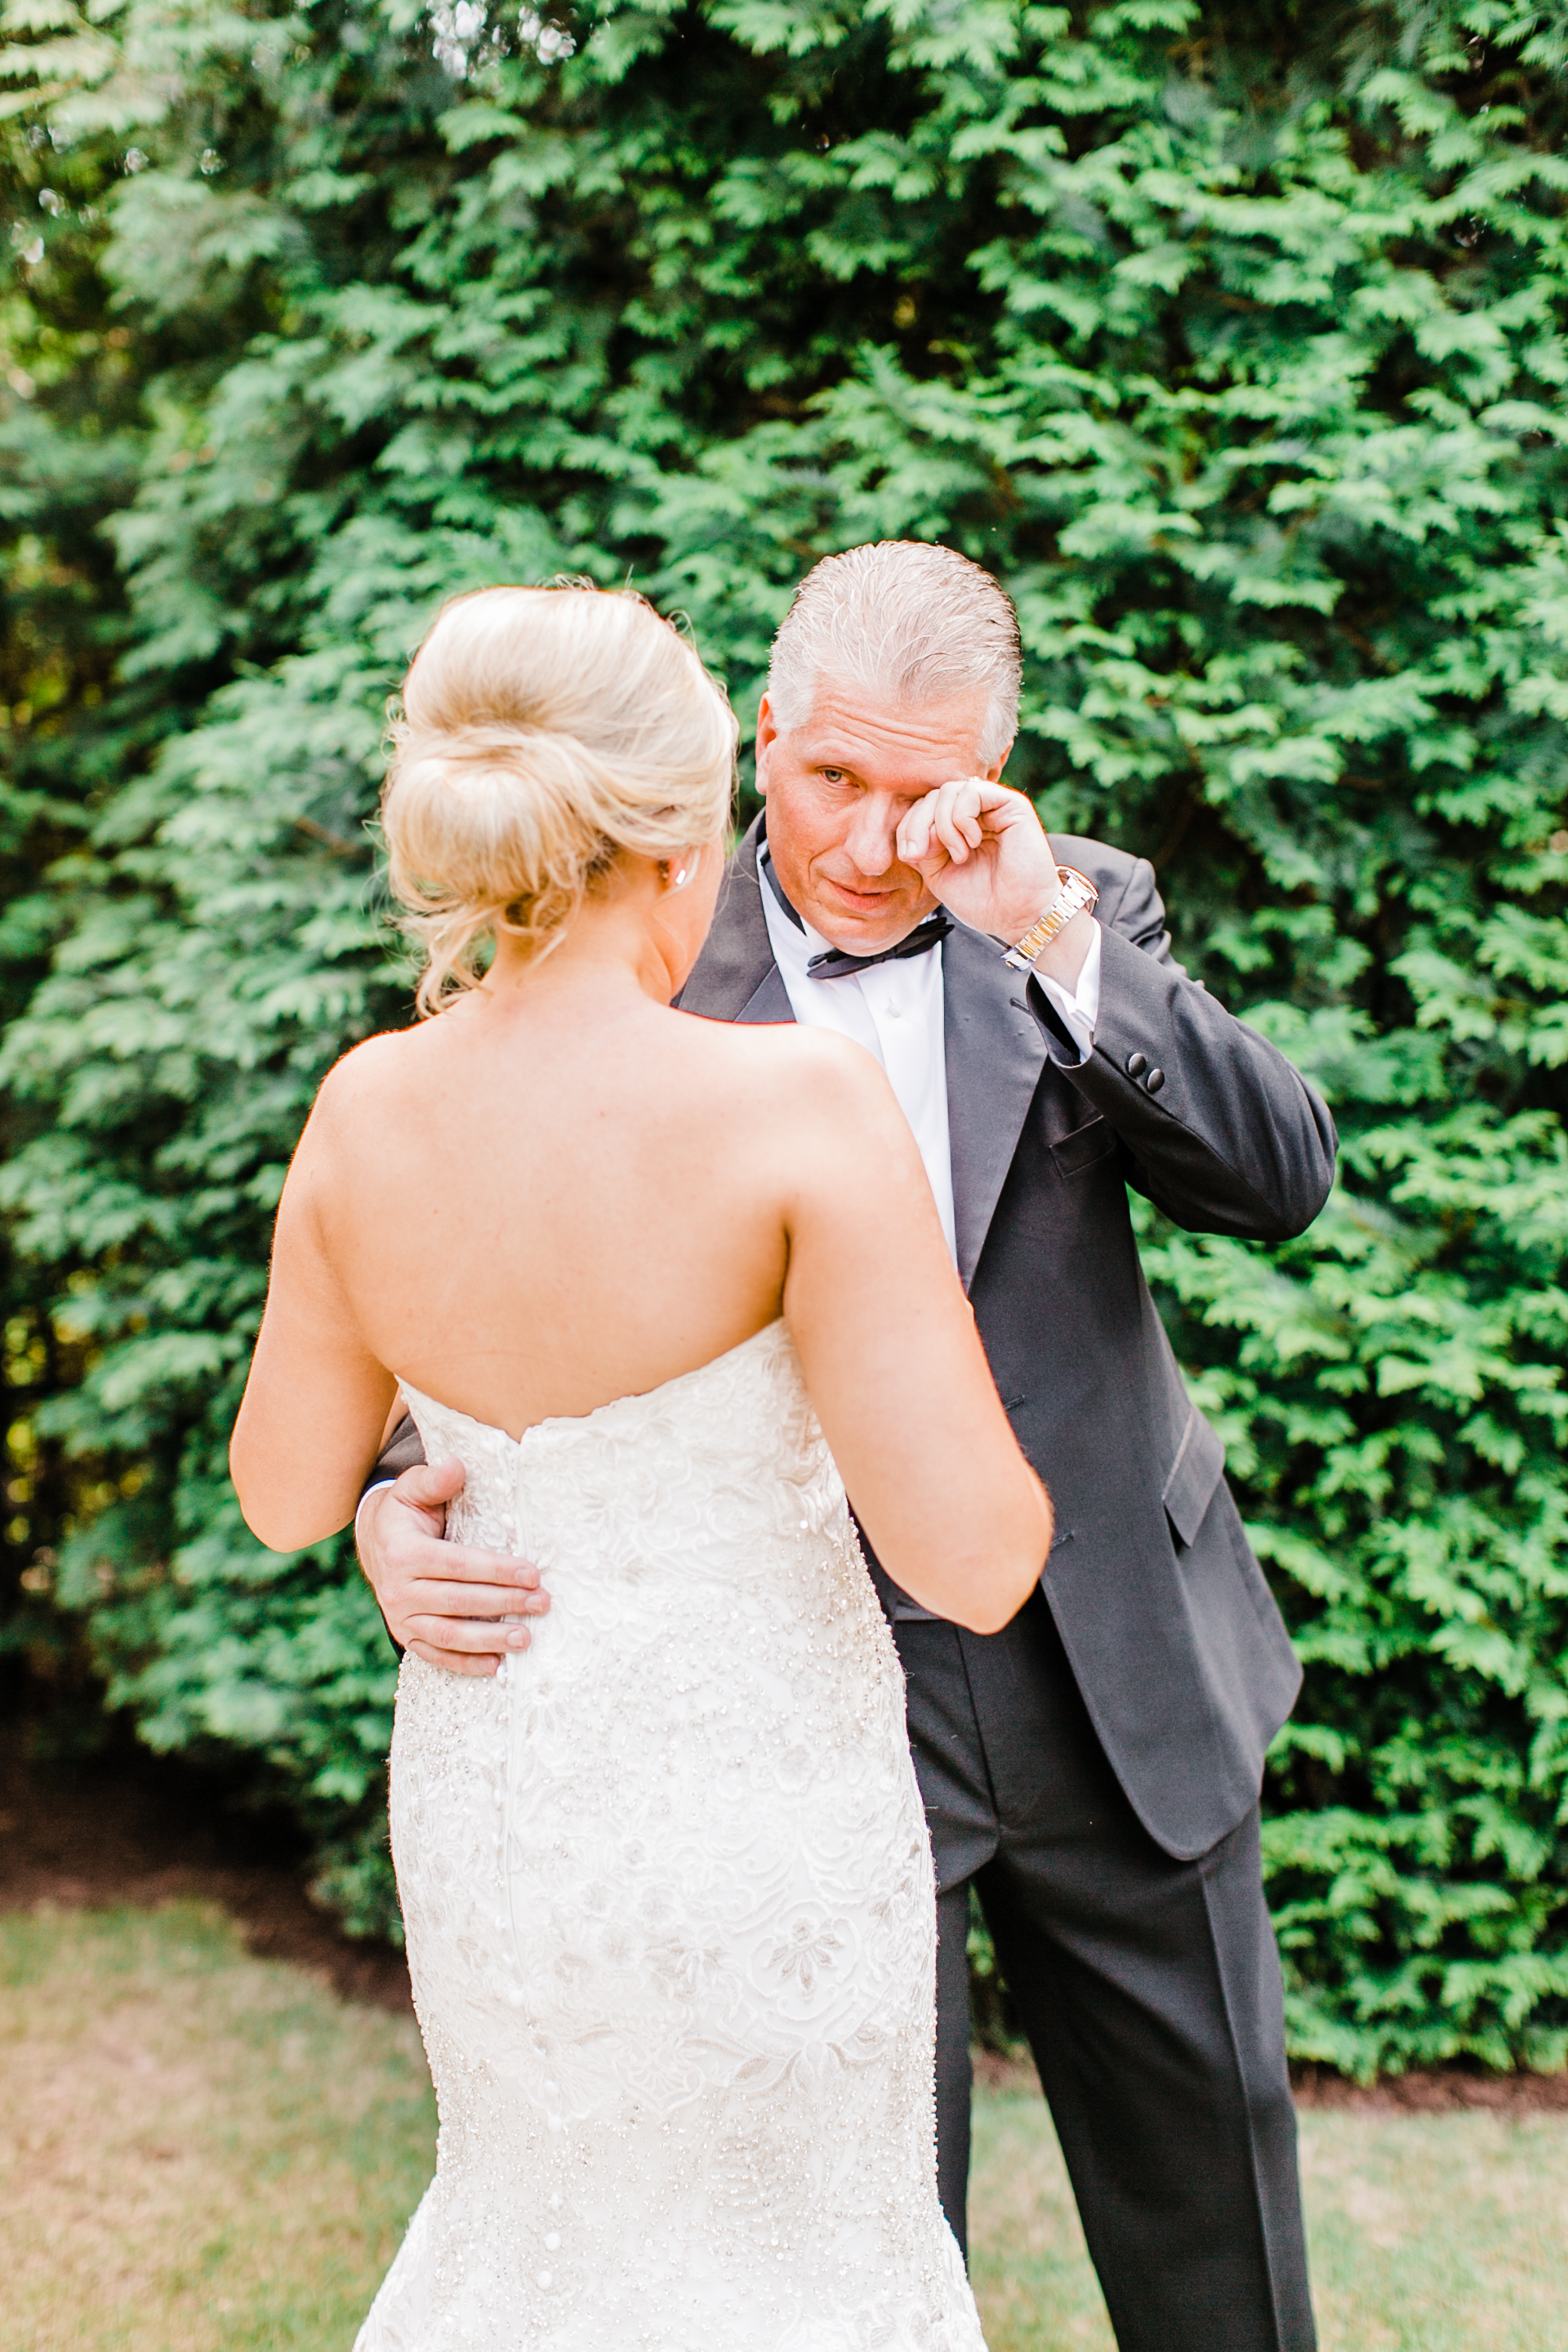 turnerwedding-63.jpg